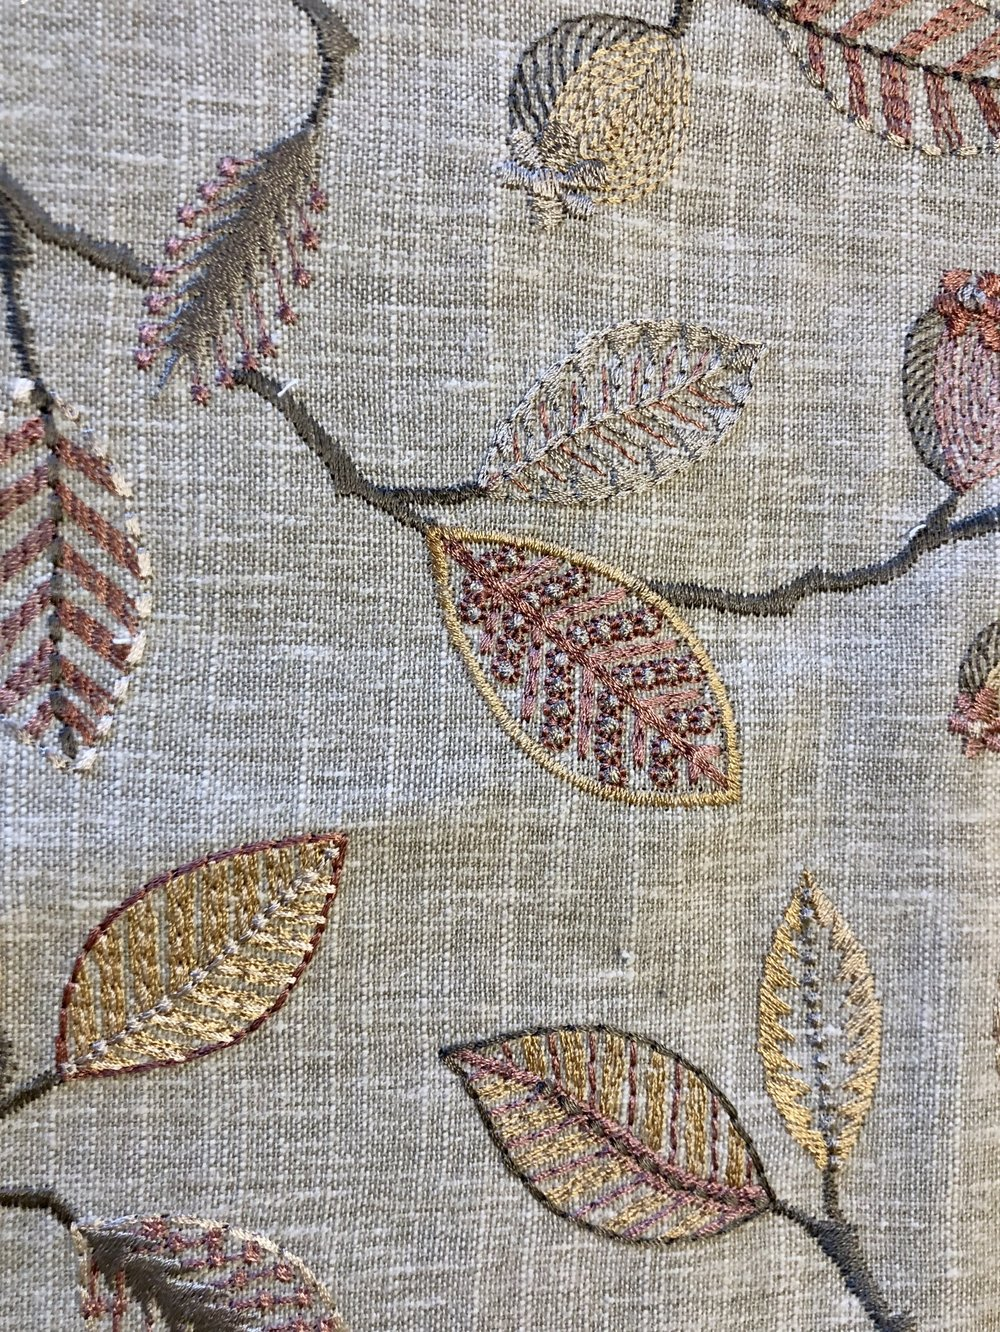 Linen embroidered fabric for window treatments pulls the new look together